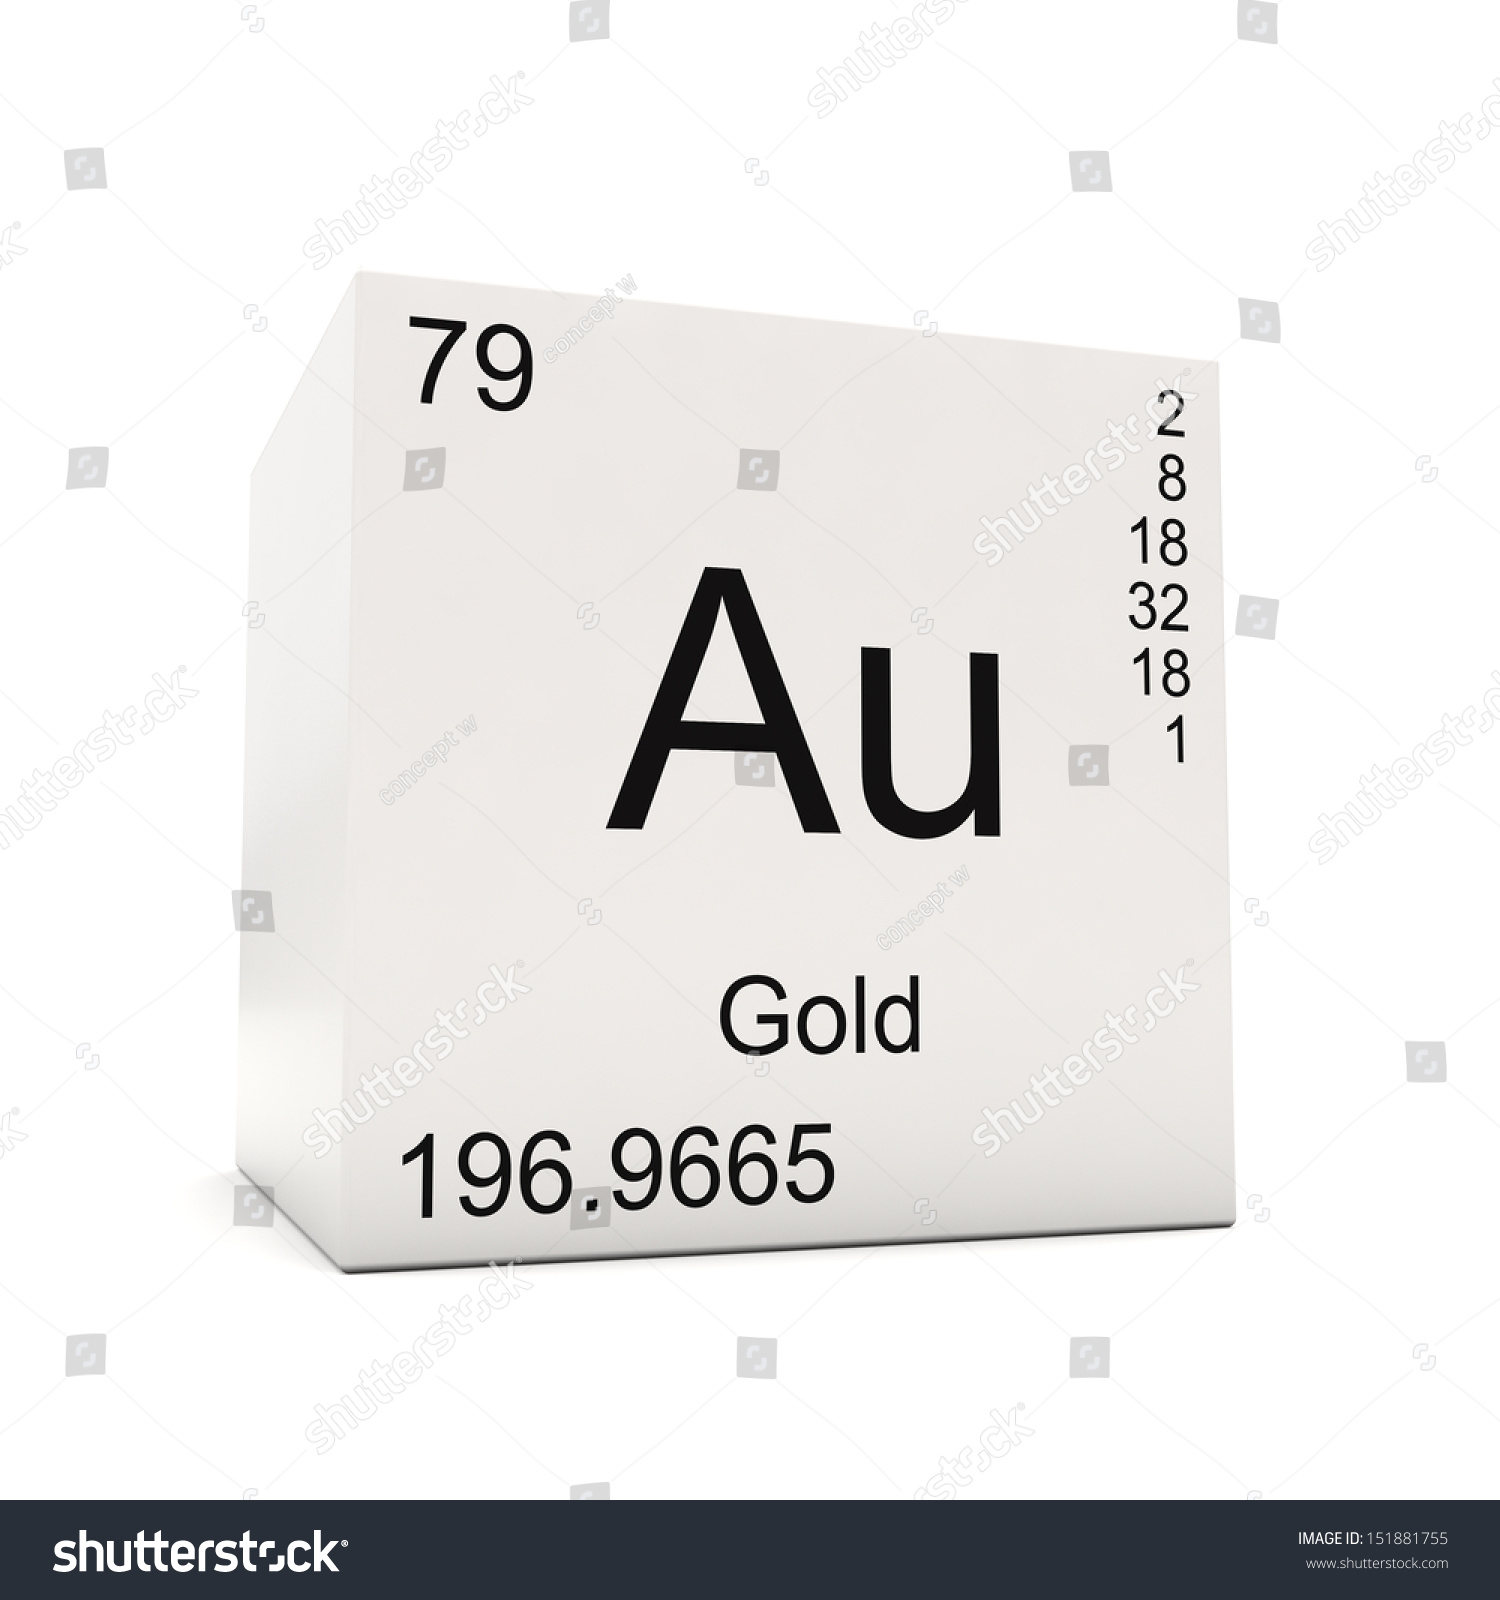 Gold on periodic table images periodic table images cube gold element periodic table isolated stock illustration cube of gold element of the periodic table gamestrikefo Images